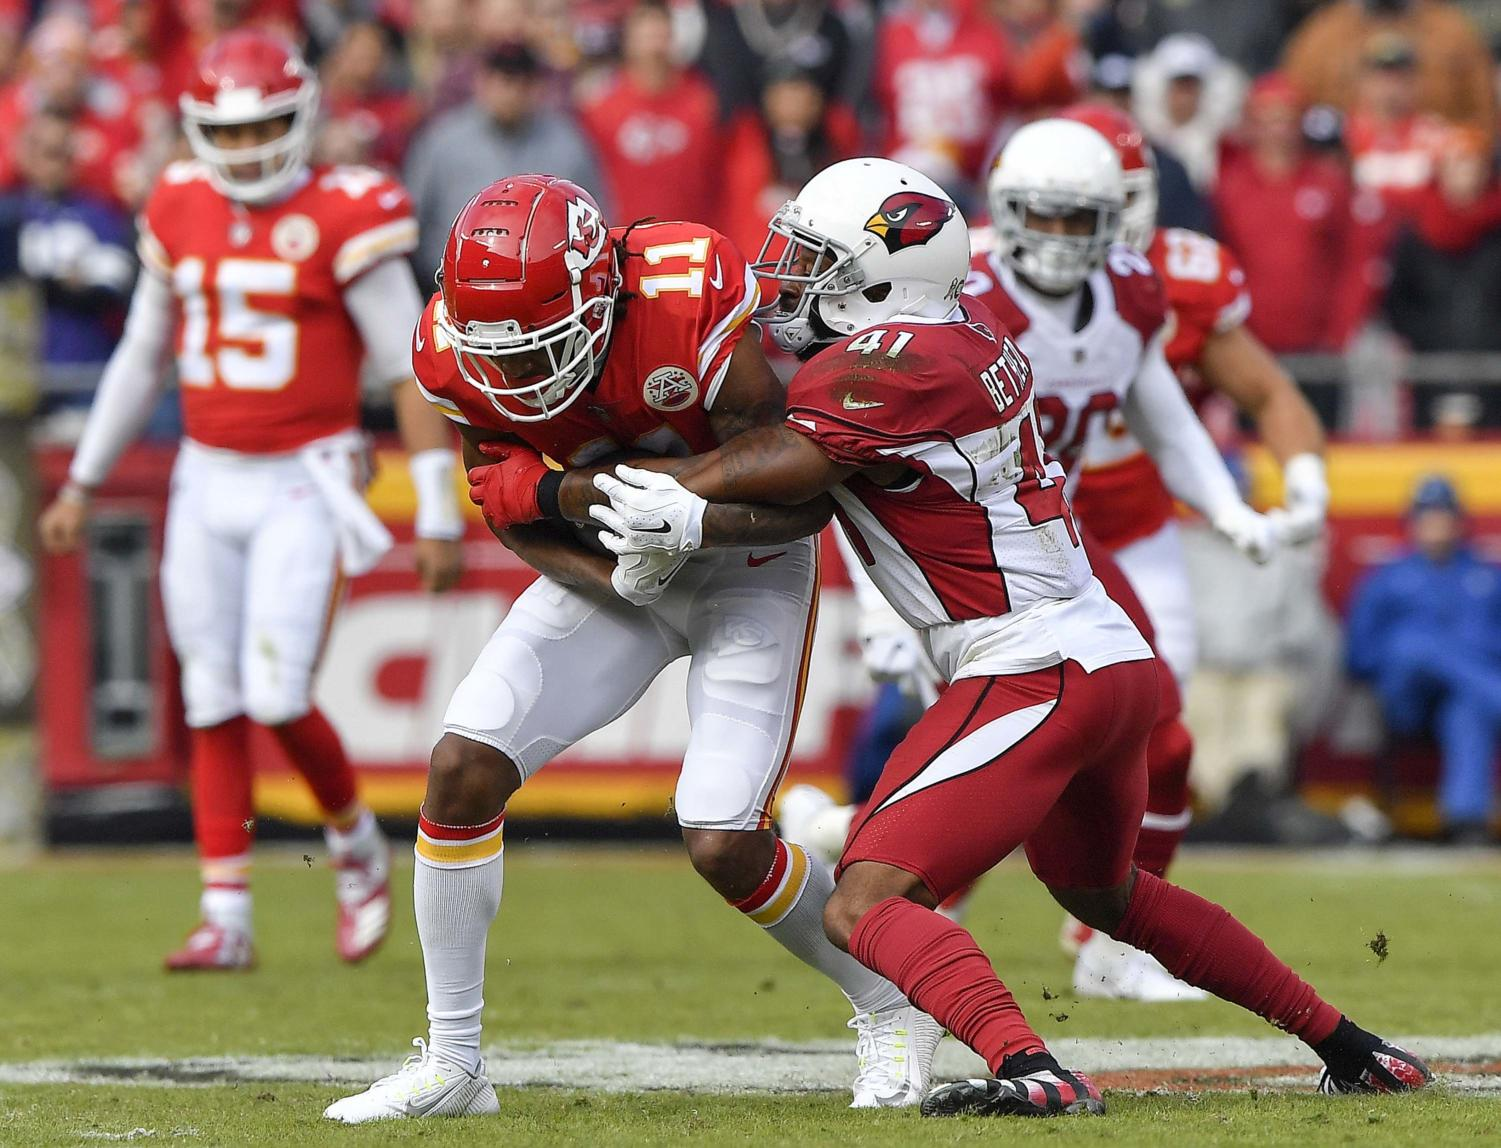 Kansas City Chiefs wide receiver Demarcus Robinson picks up a first down before being stopped by Arizona Cardinals free safety Antoine Bethea in the first quarter on Sunday, Nov. 11, 2018 at Arrowhead Stadium in Kansas City, Missouri.